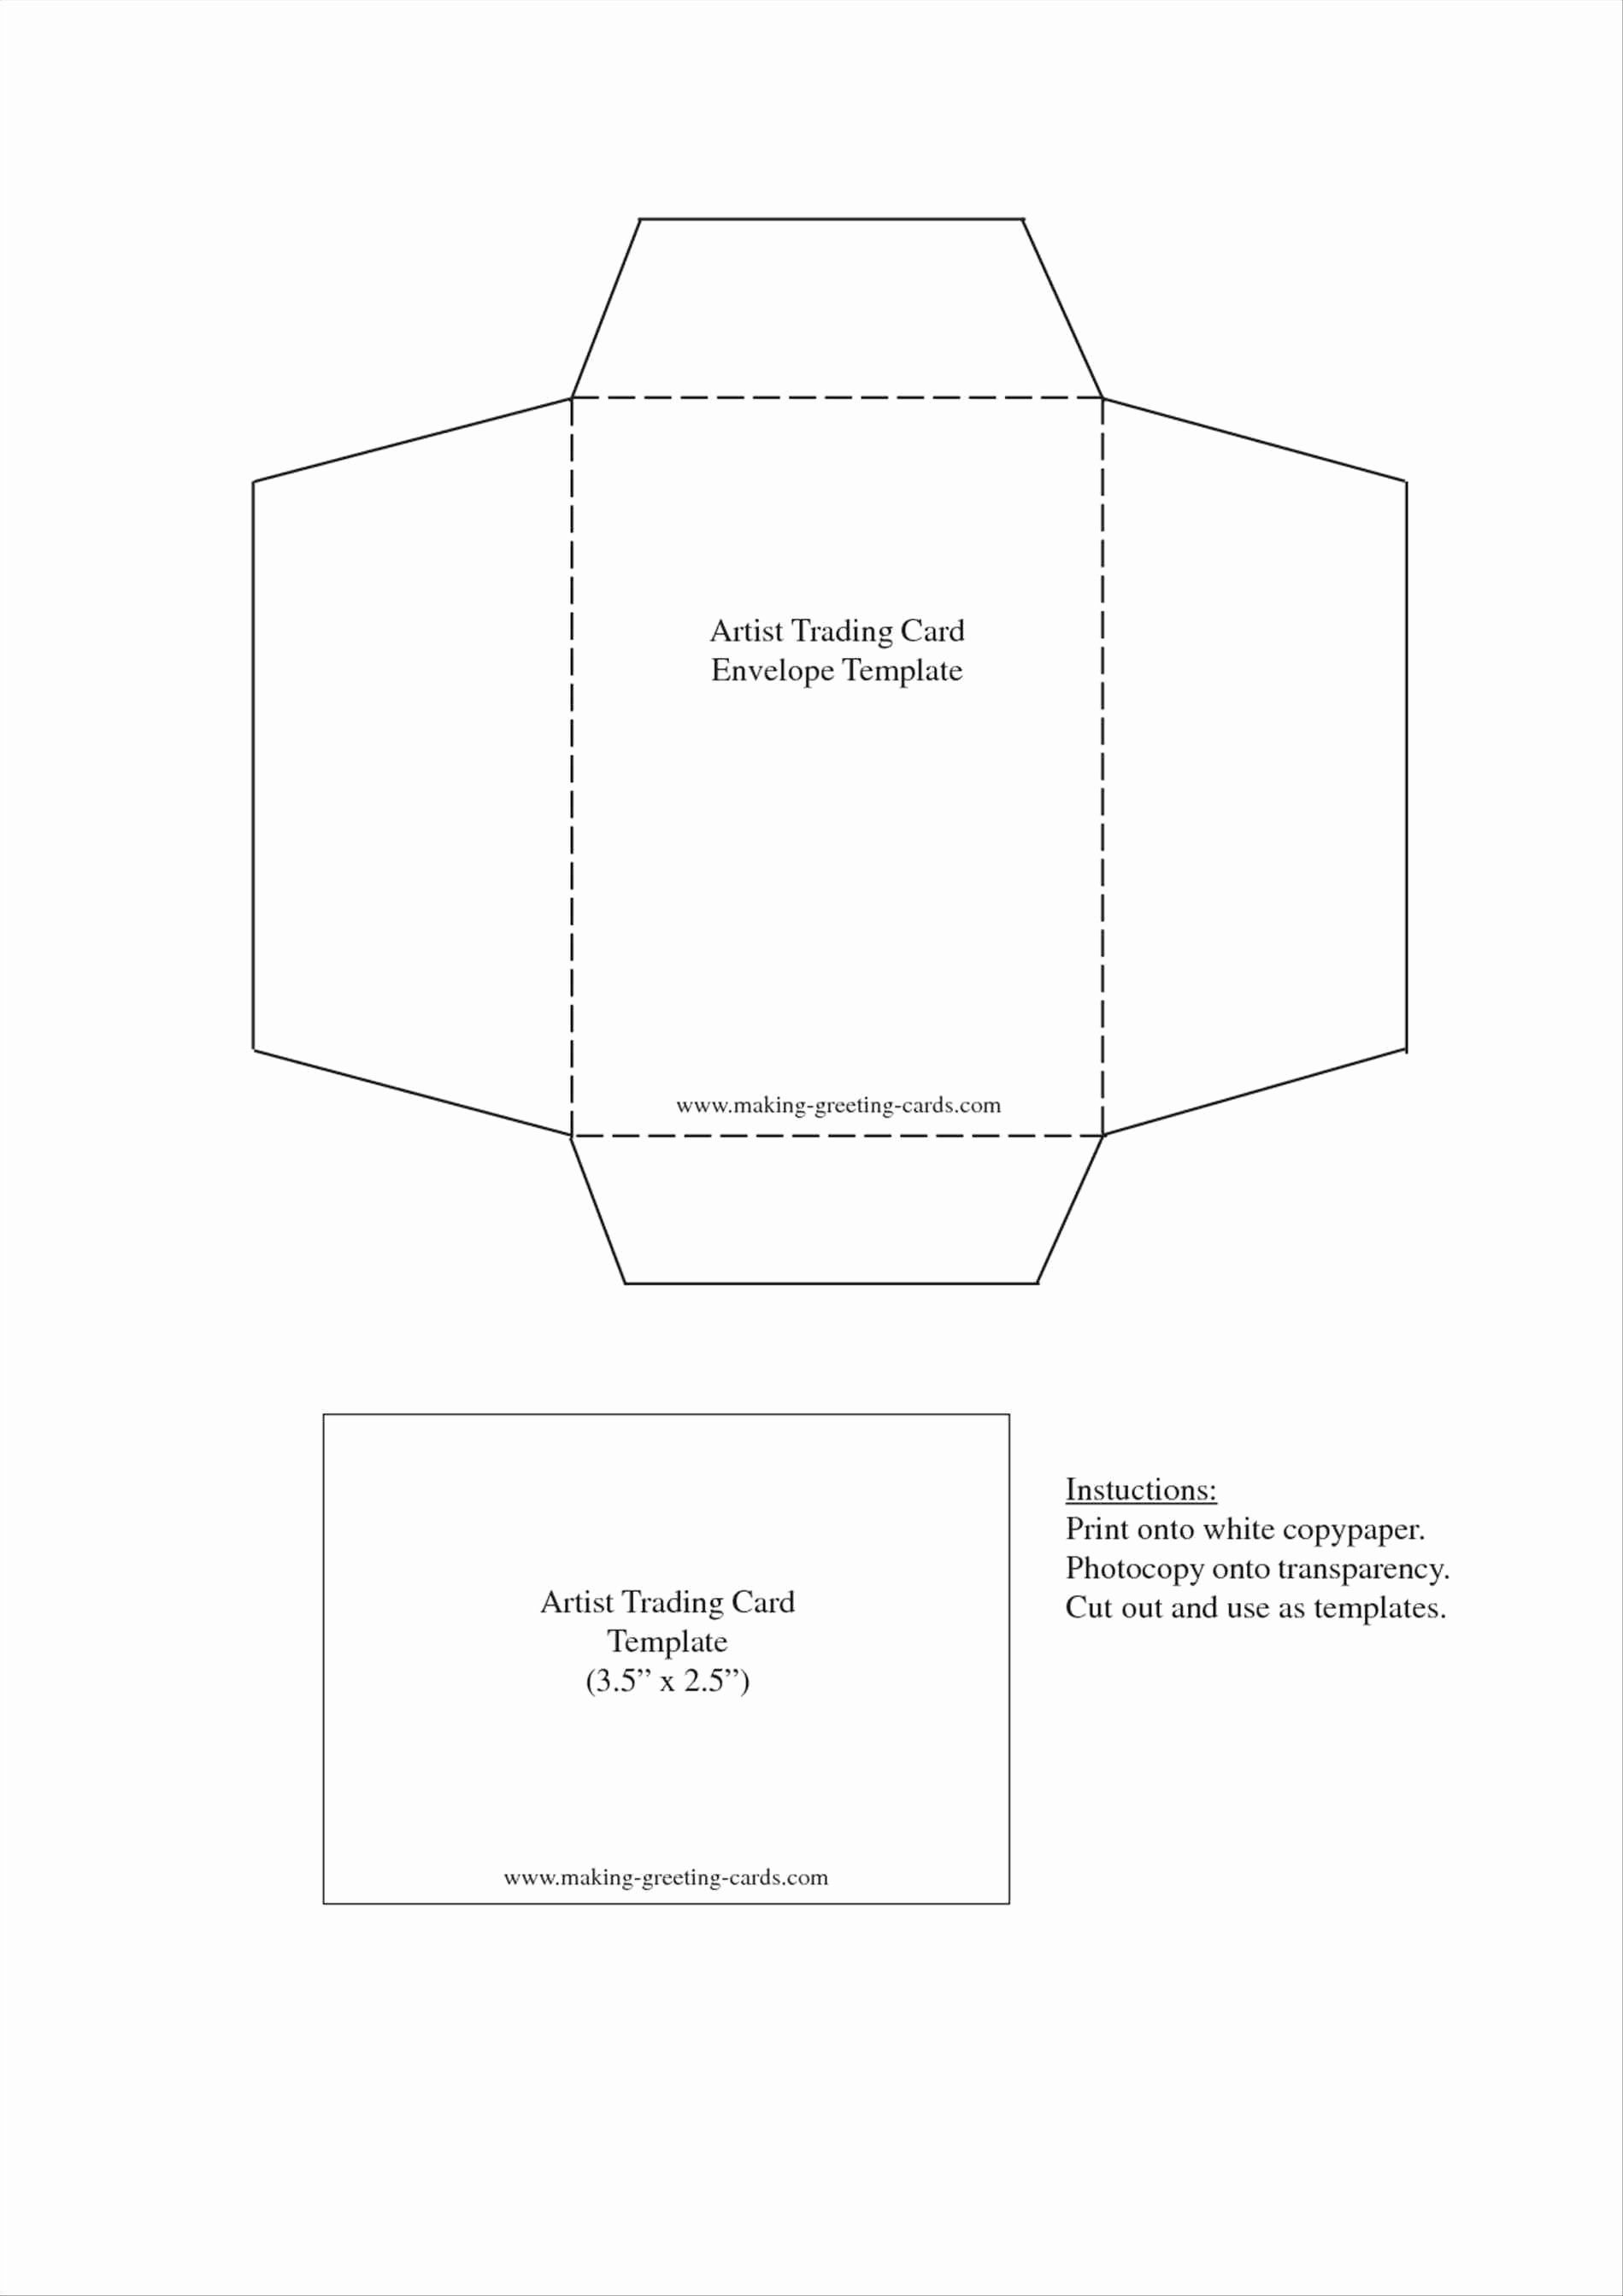 A7 Envelope Template Microsoft Word Unique Envelope Templates Sampletemplatez Sample Trading Card Template Gift Card Envelope Template Card Templates Printable